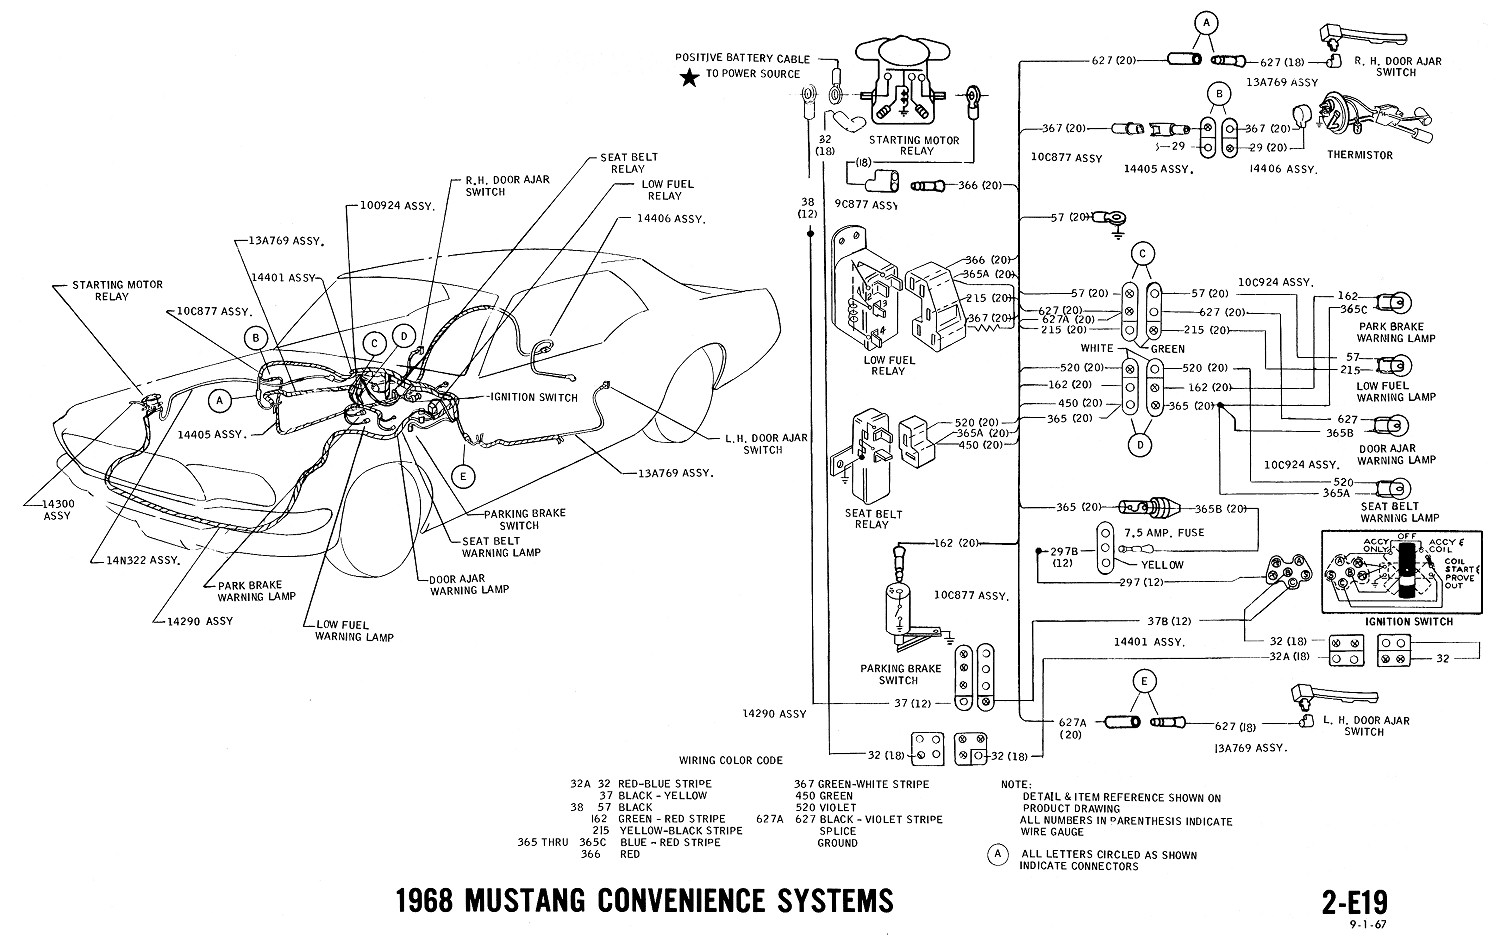 1968 Mustang E Brake Diagram. Engine. Wiring Diagram Images